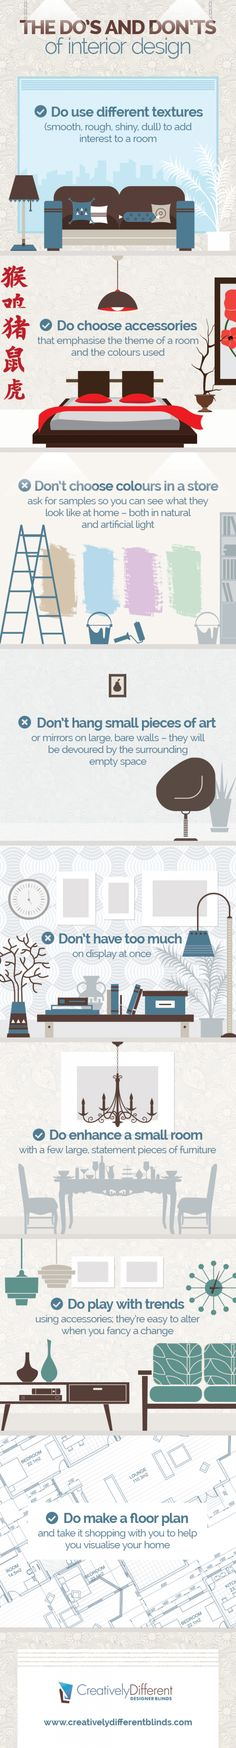 The Dou0027s And Donu0027t Of Interior Design Infographic